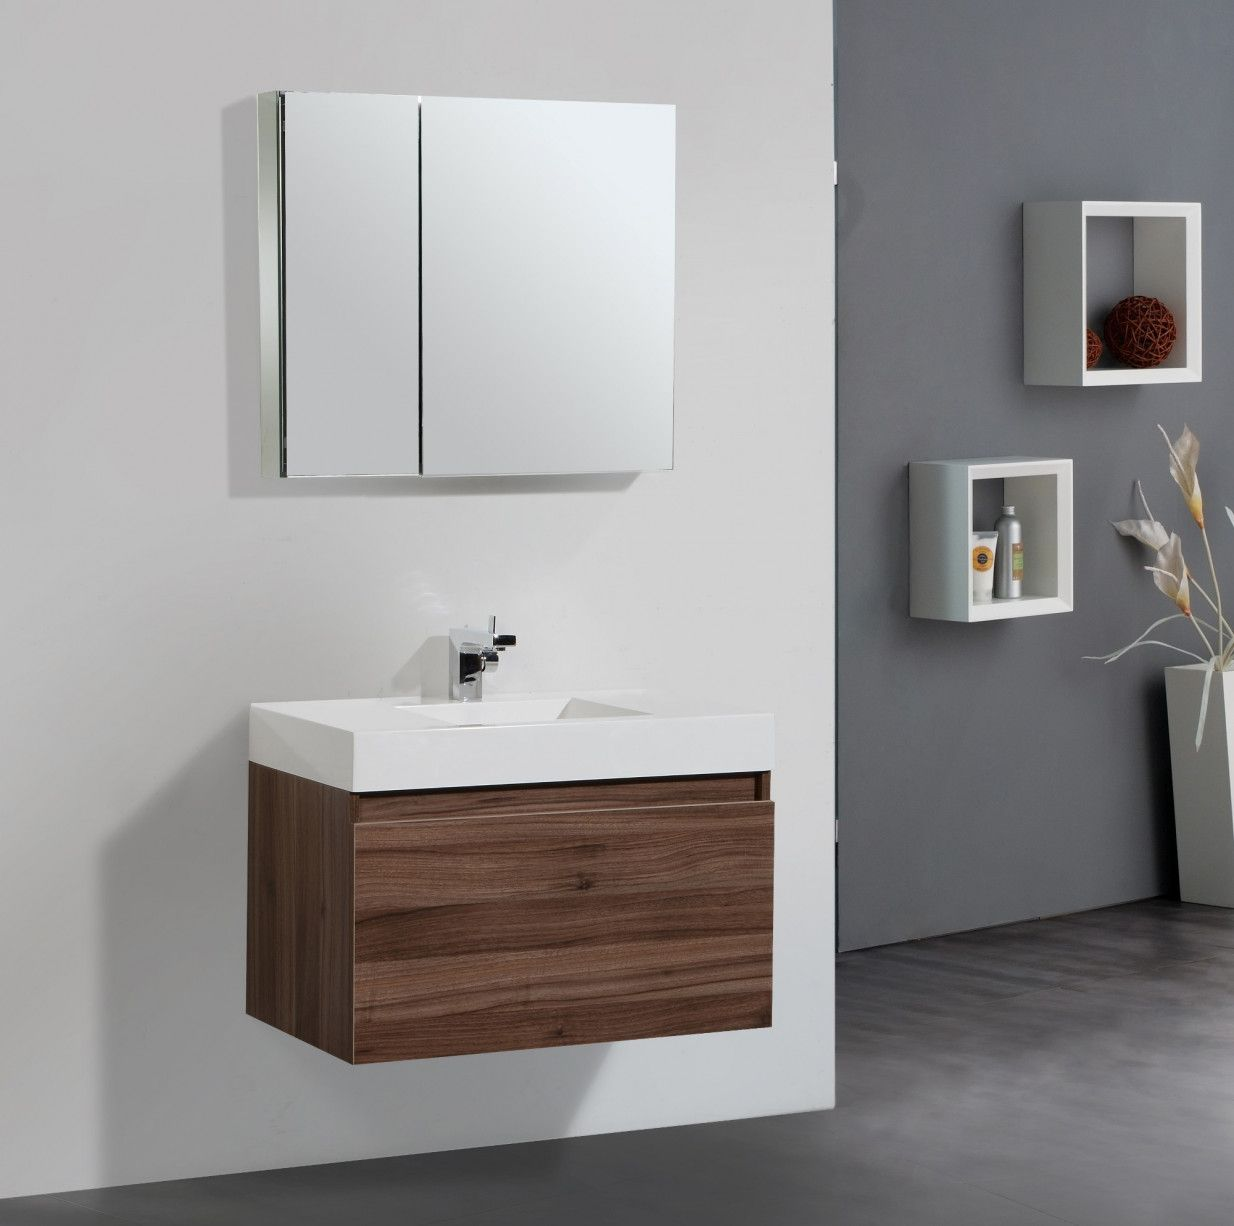 Small Bathroom Cabinets With Sink Best Interior Paint Brand - Best bathroom paint brand